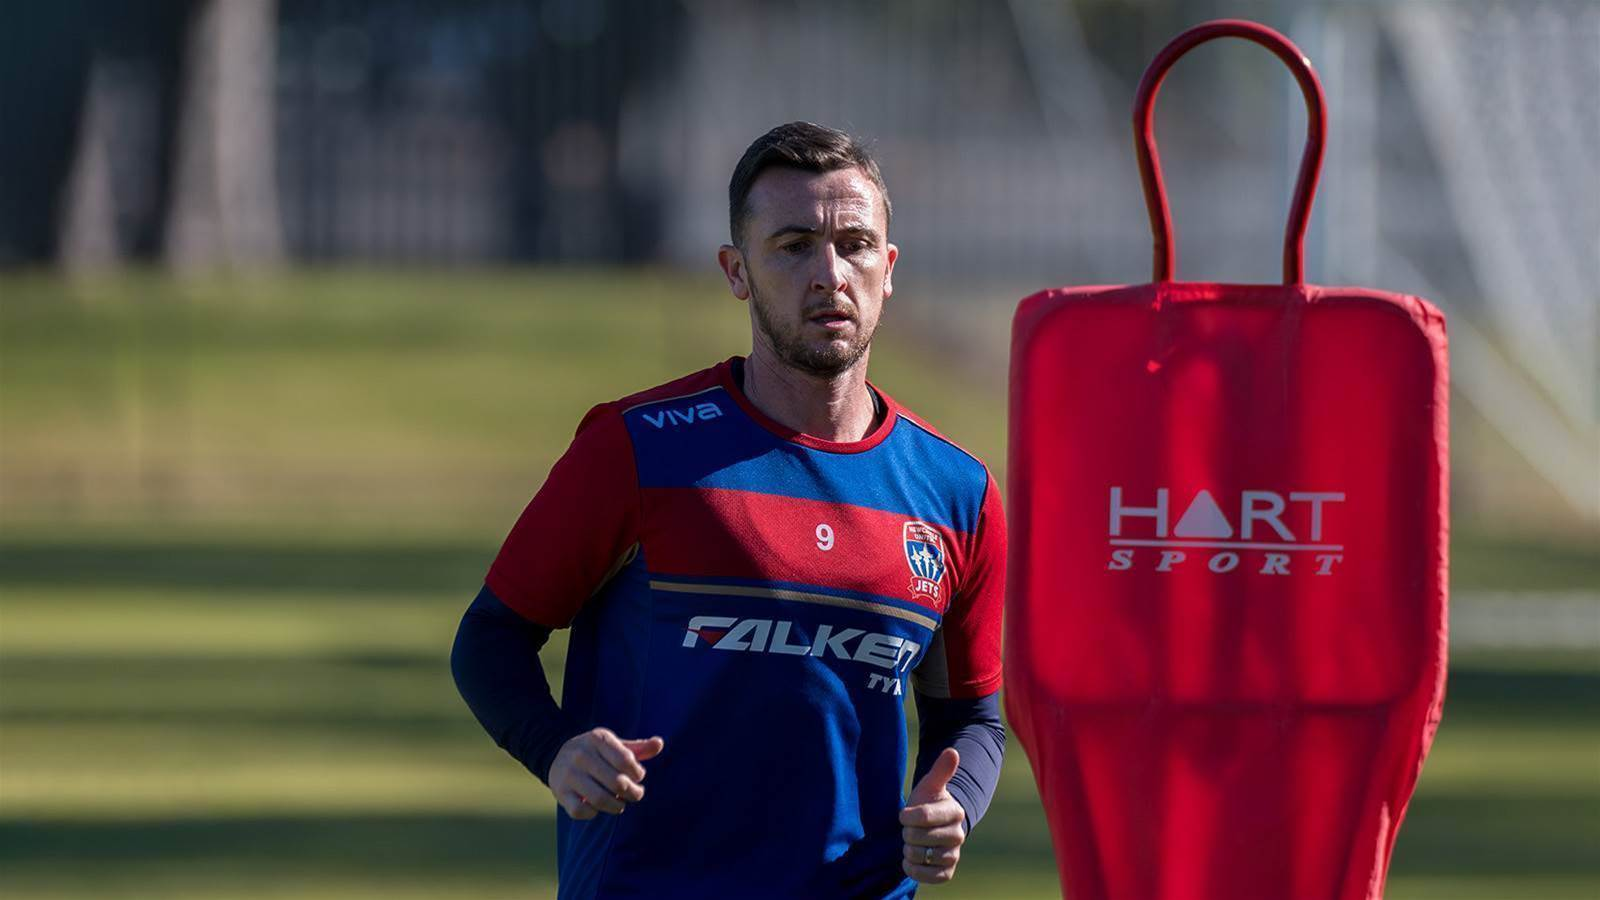 Newcastle Jets let O'Donovan go